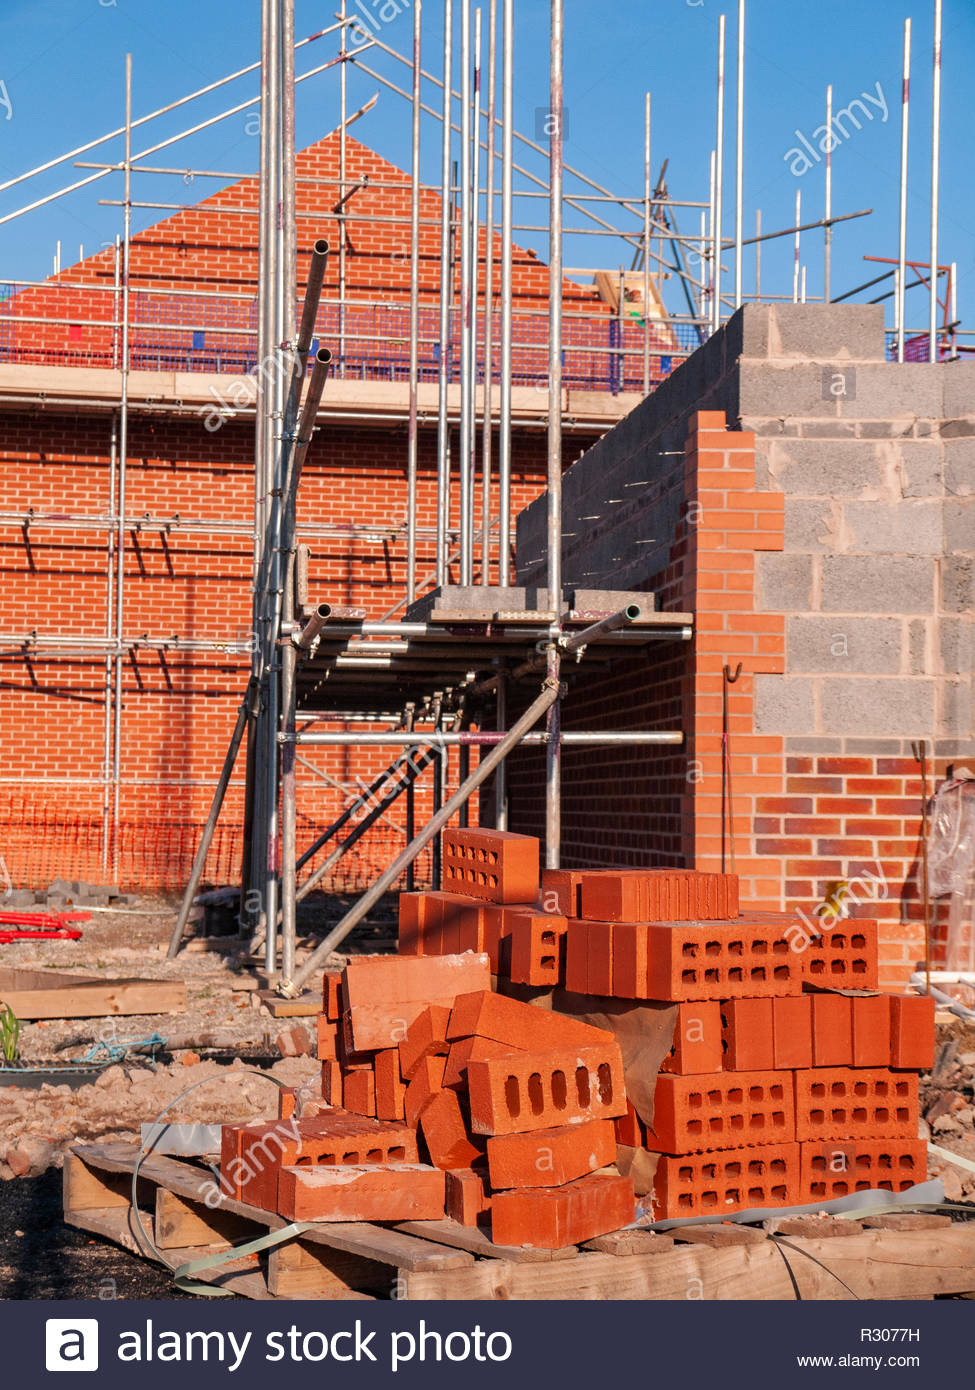 New houses under construction and in scaffolding in Cheshire England UK - Stock Image